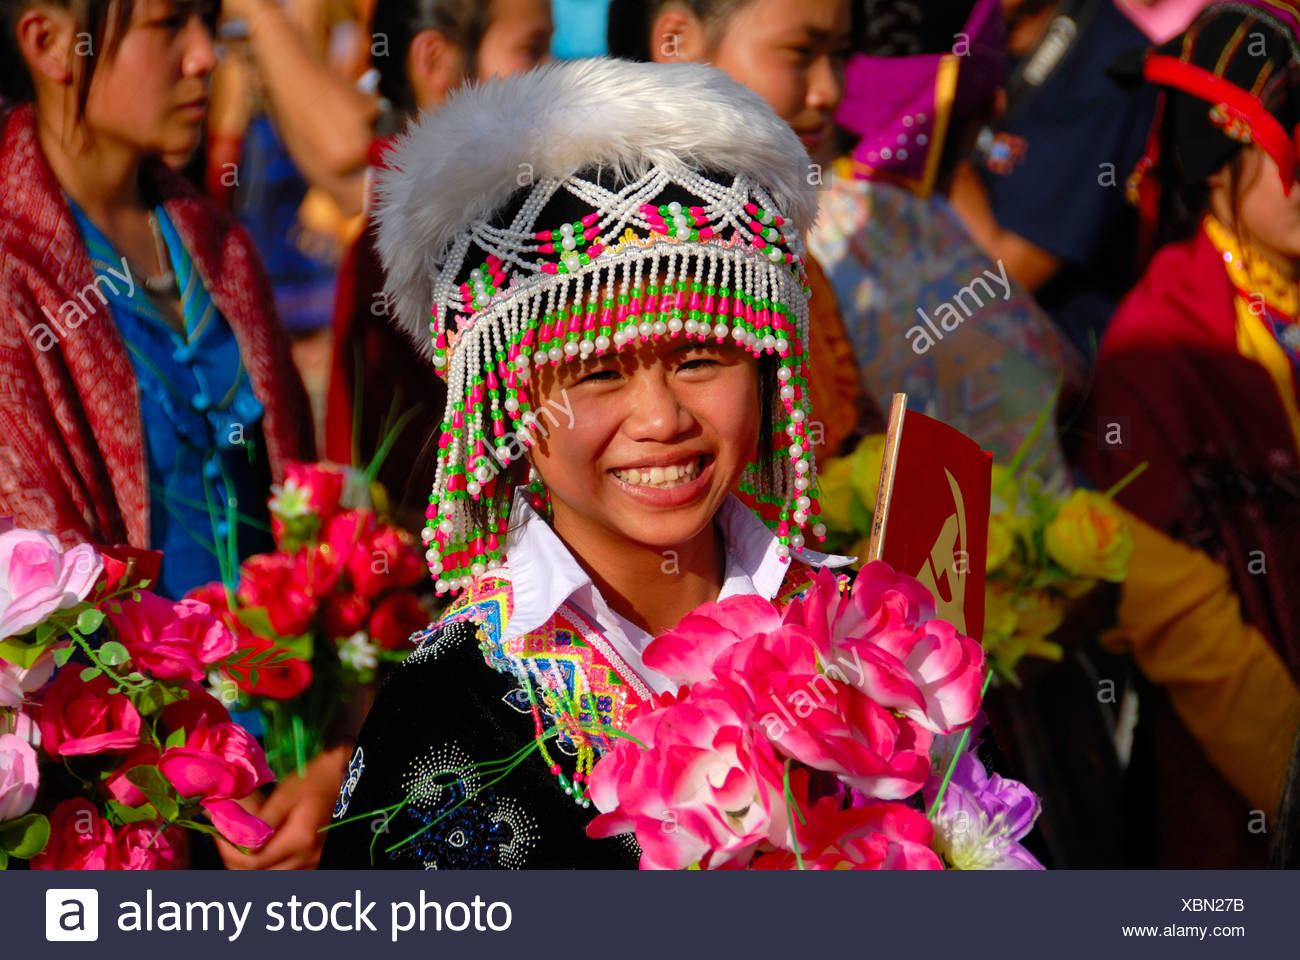 Festival, young Hmong woman, portrait, dressed in traditional clothing, colourful headwear, Xam Neua, Houaphan province, Laos,  - Stock Image